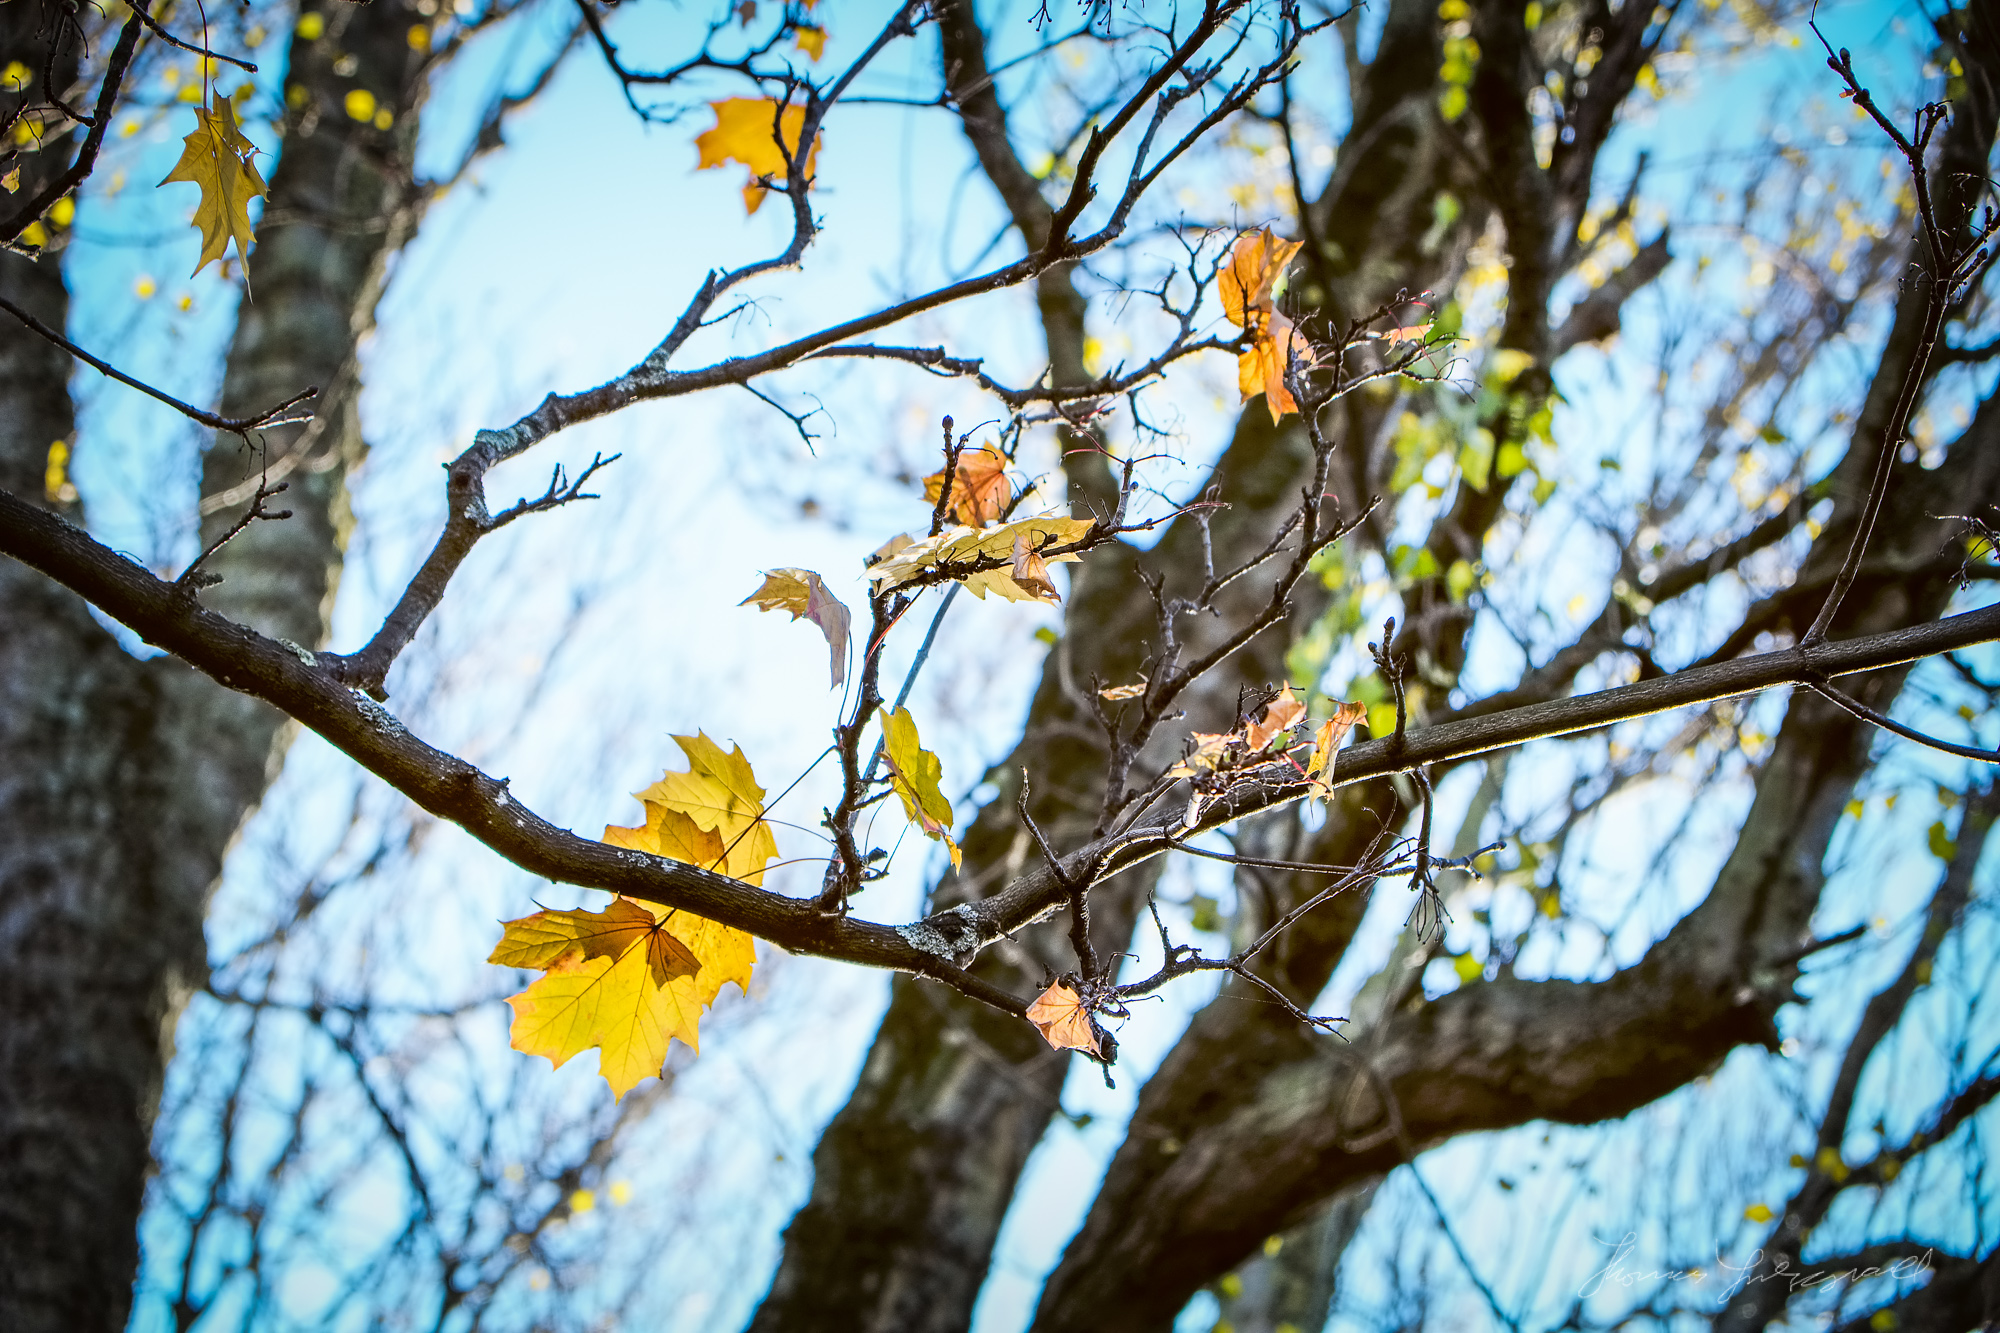 Golden Leaves Hanging On - Taken with Fuji XE1